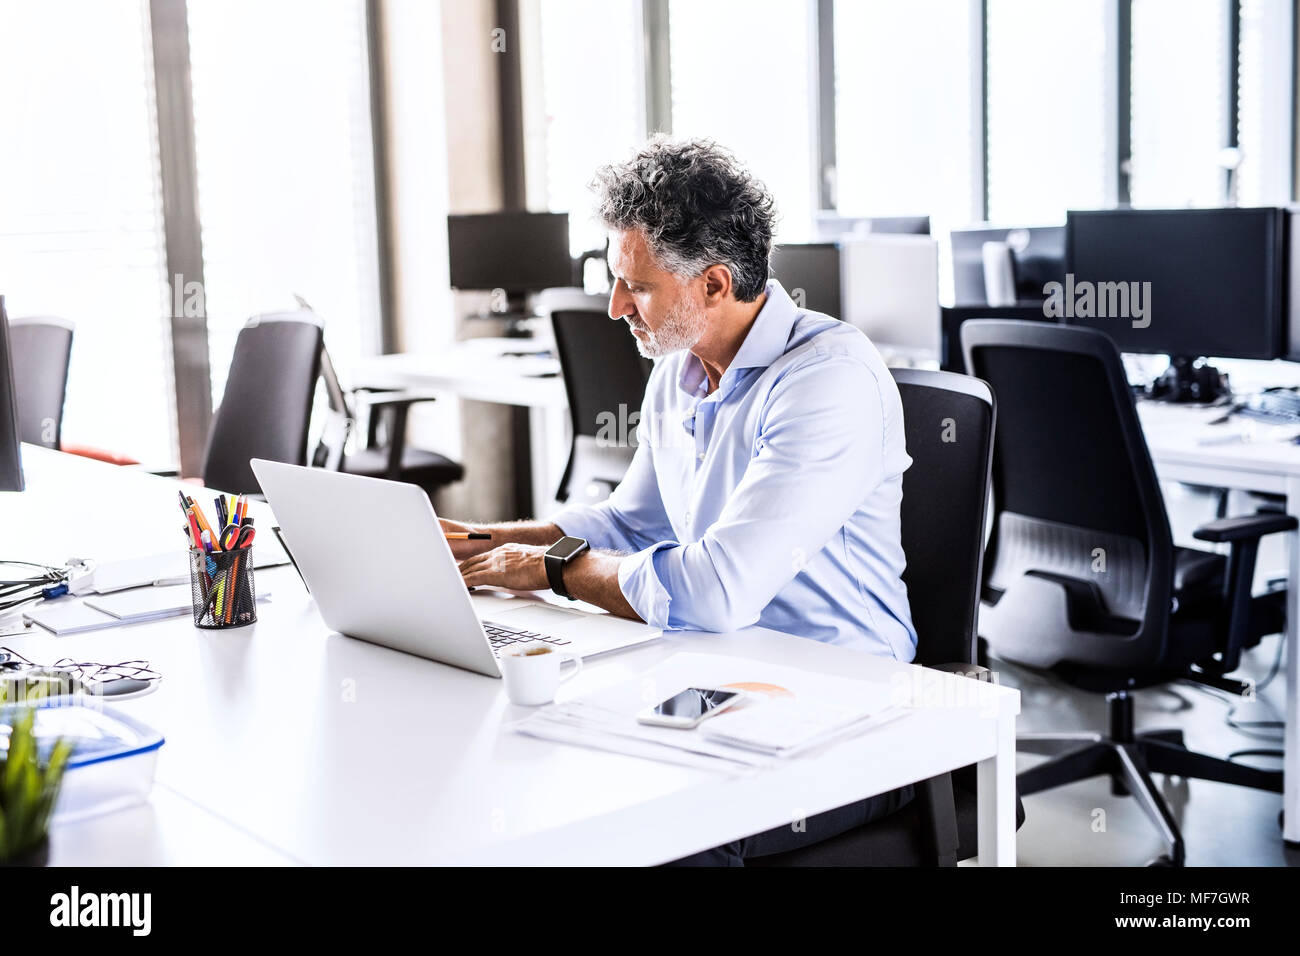 Mature businessman working at desk in office Photo Stock